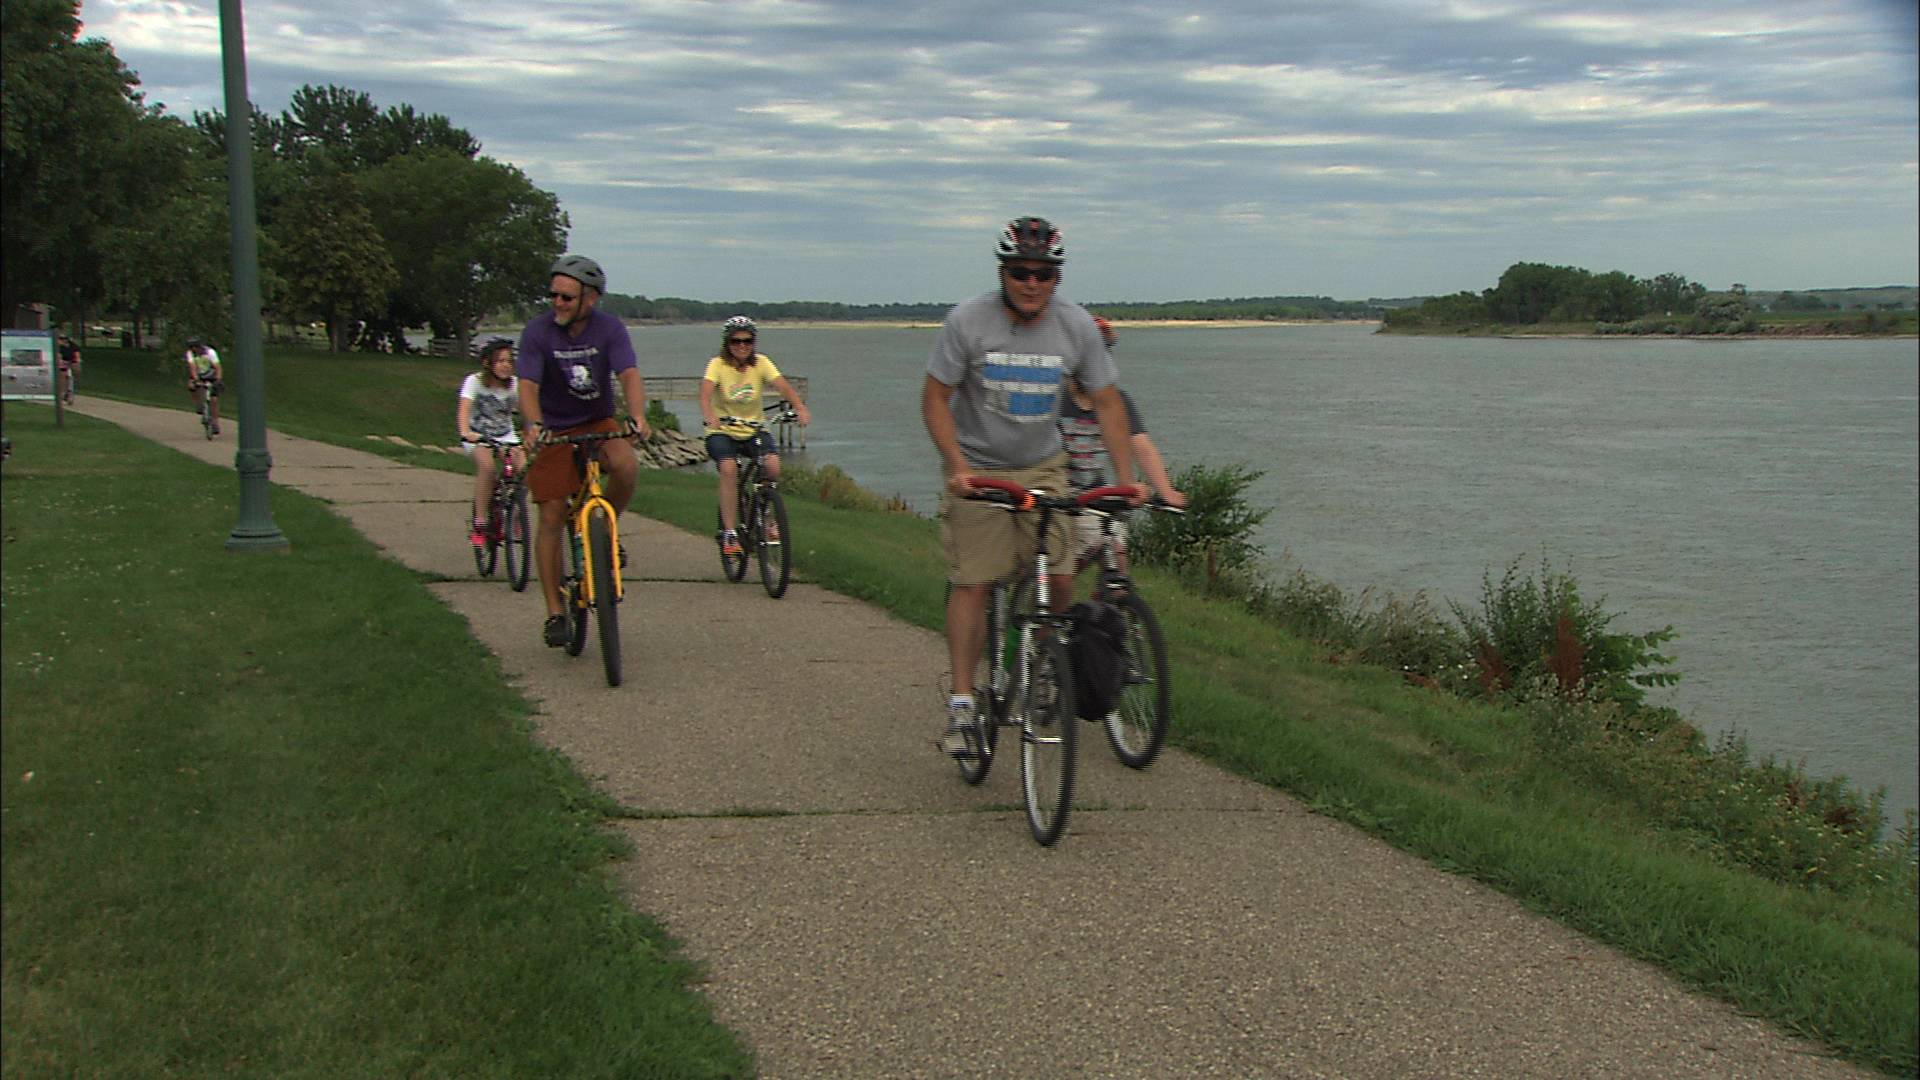 A Yankton family rides their bikes along the banks of the Missouri